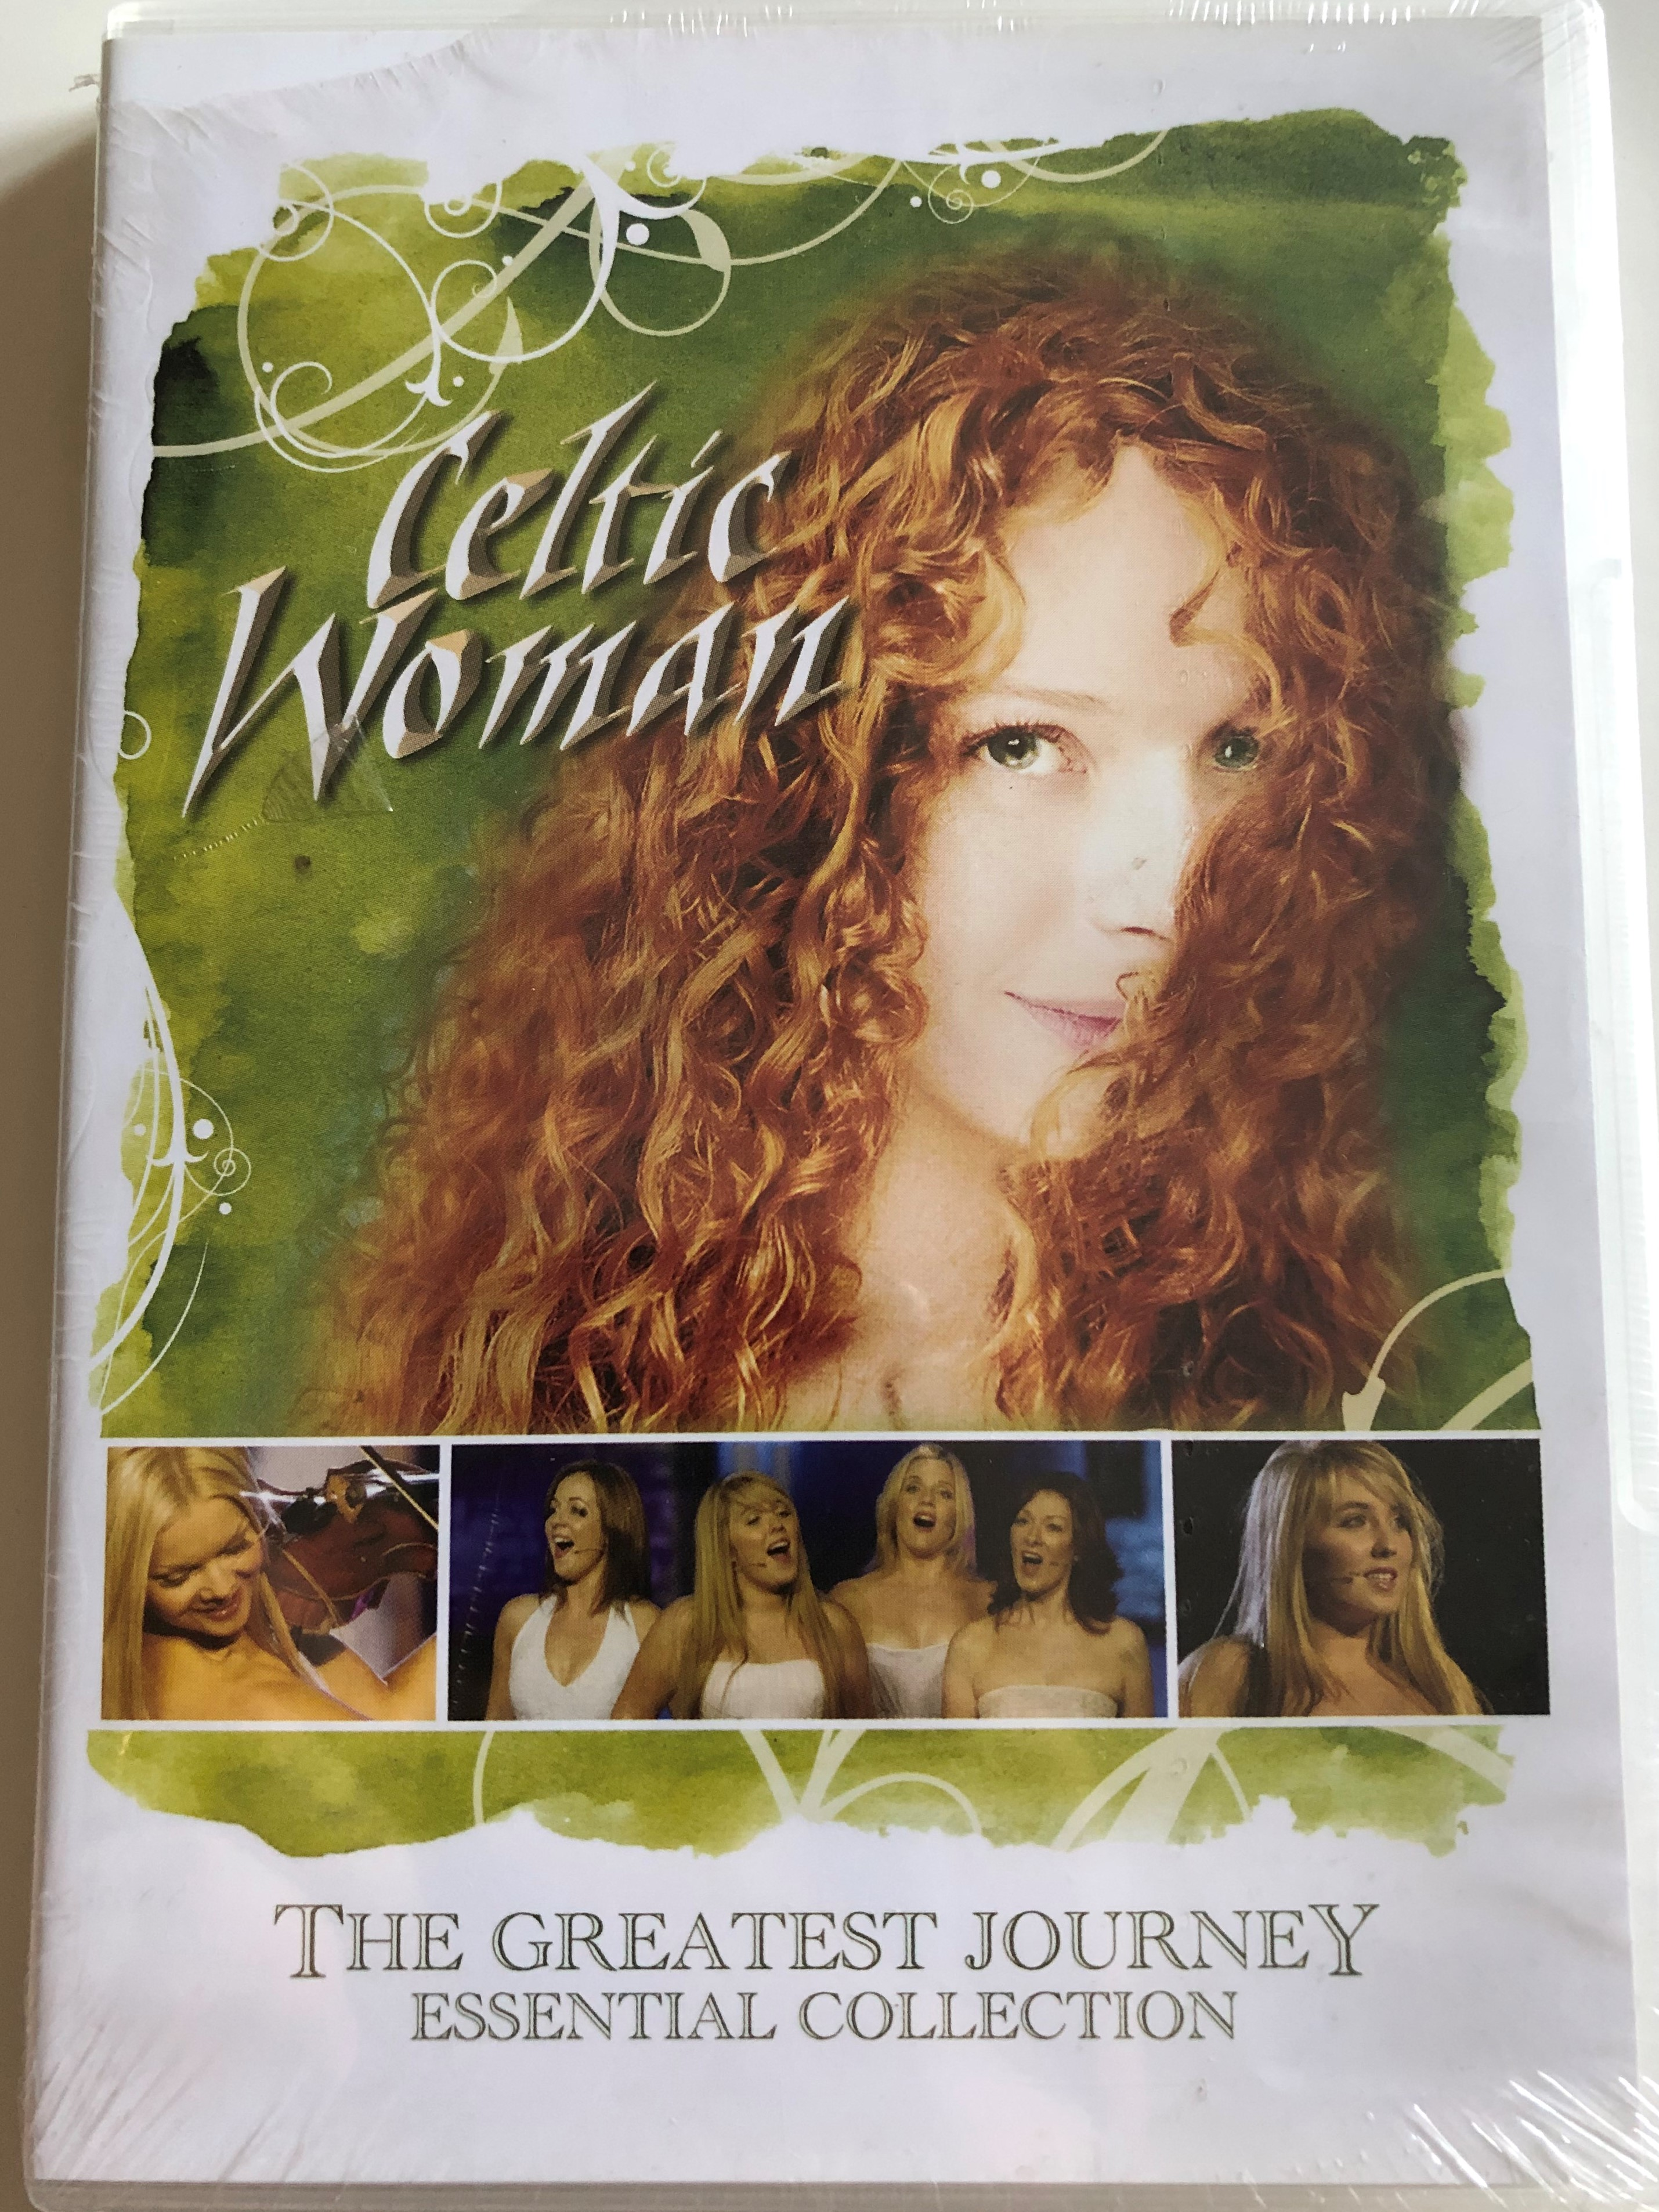 celtic-woman-the-greatest-journey-dvd-2008-essential-collection-1.jpg